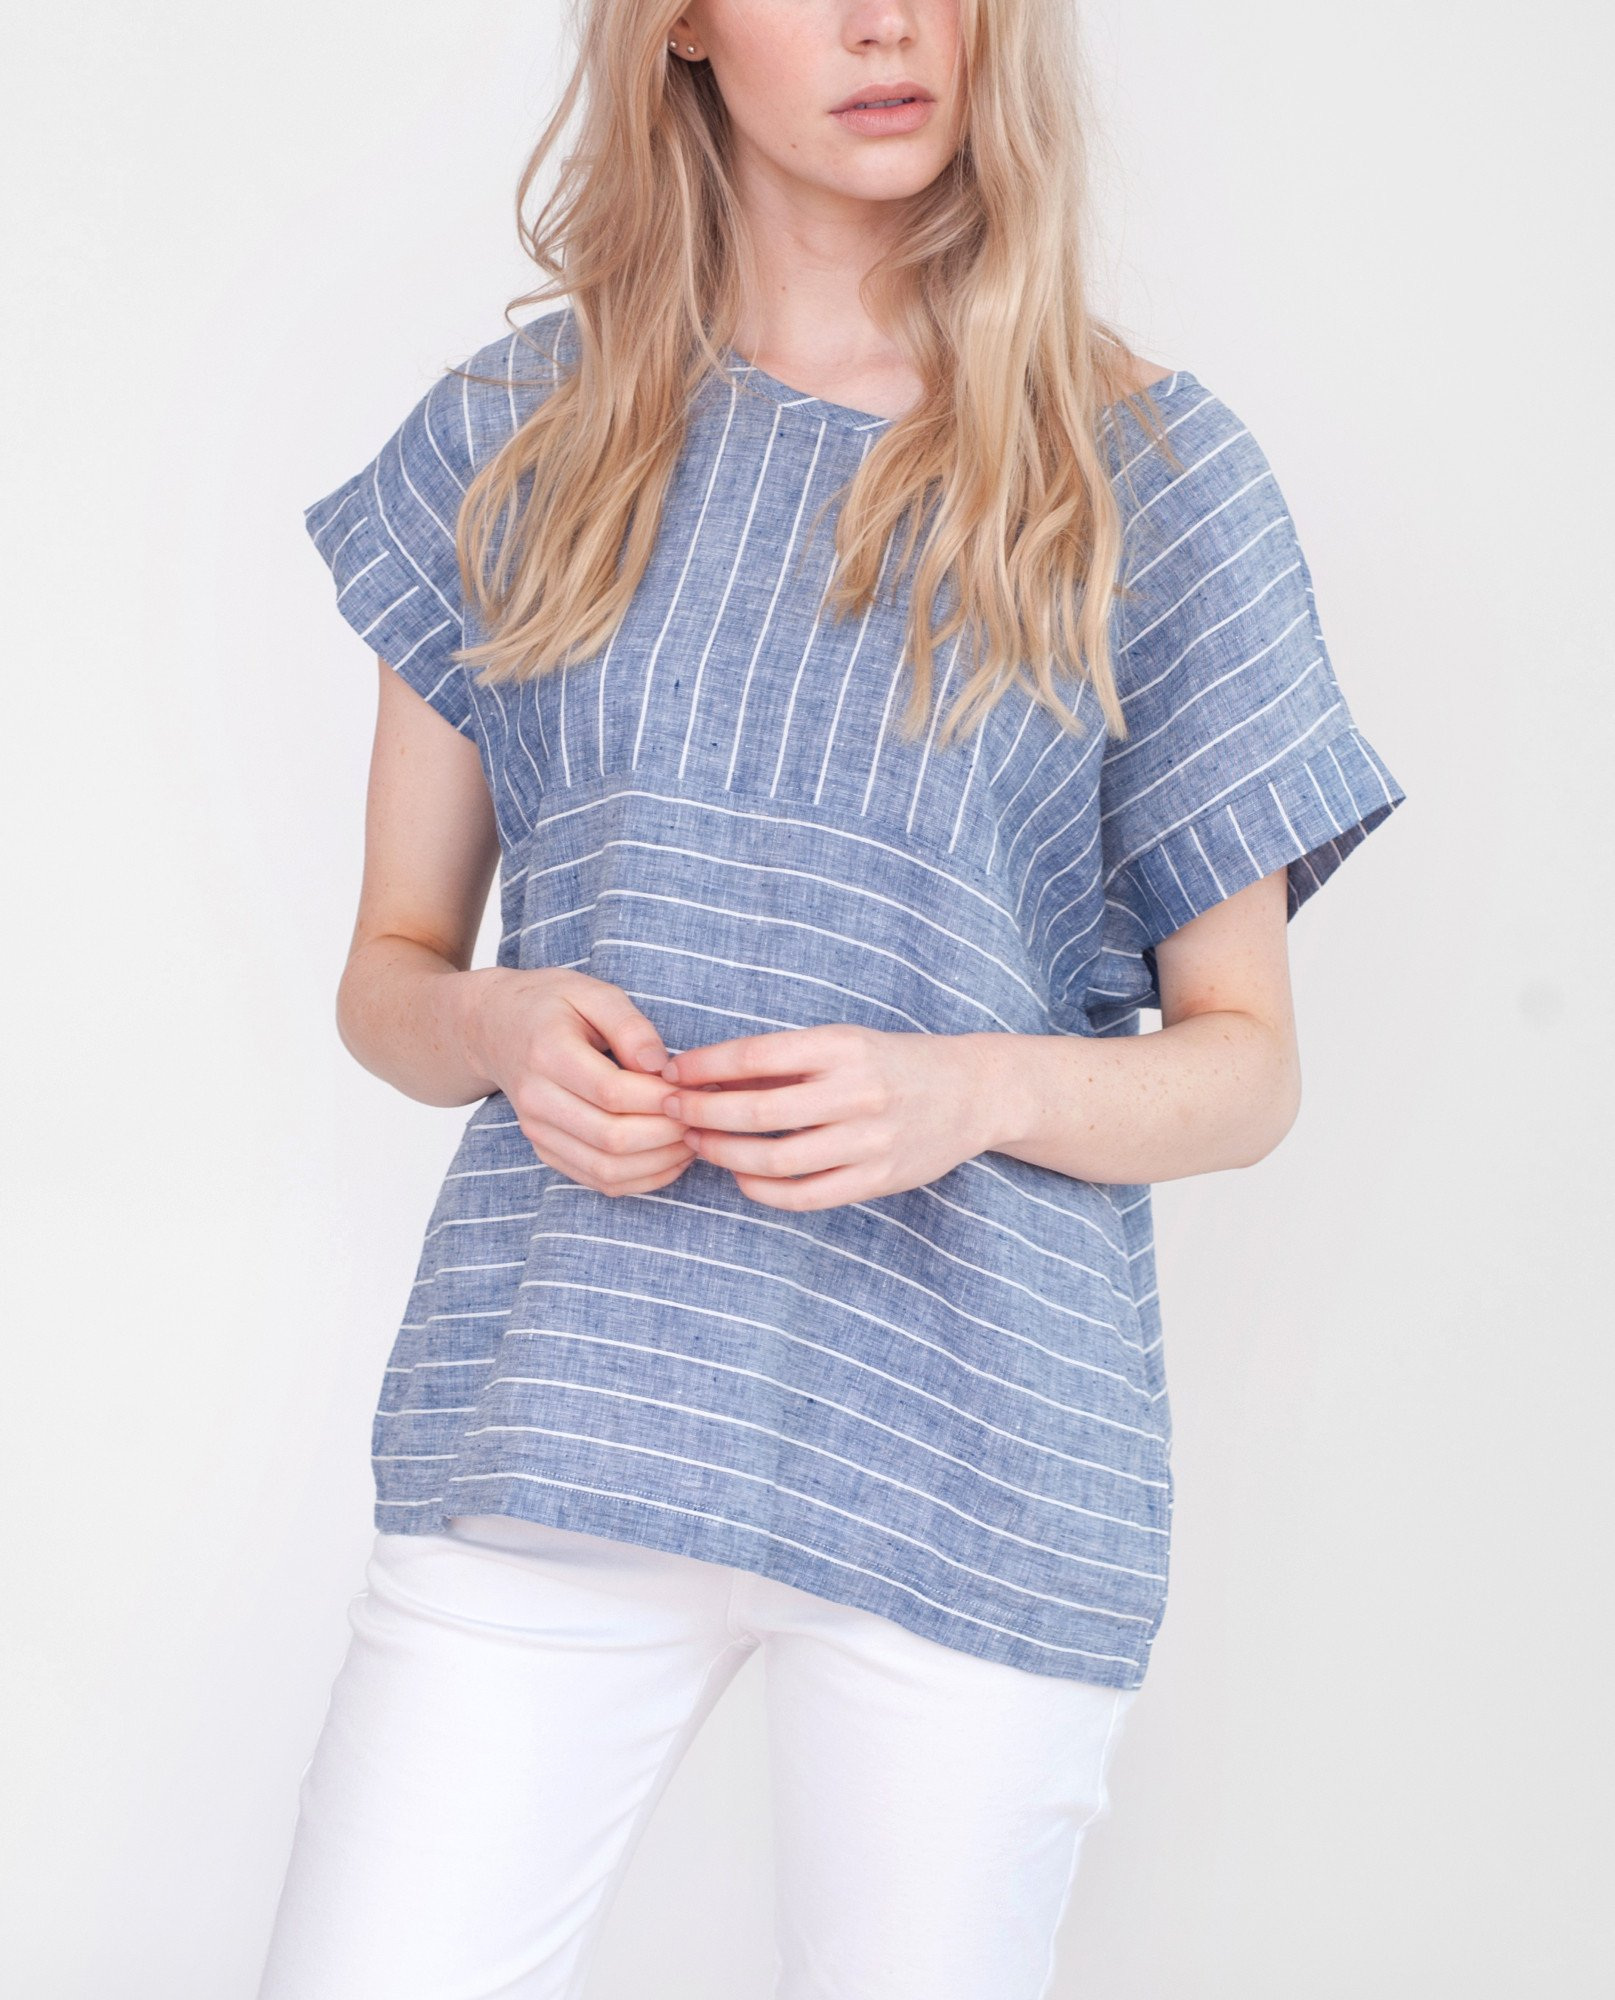 FIONA Linen Striped Top from Beaumont Organic